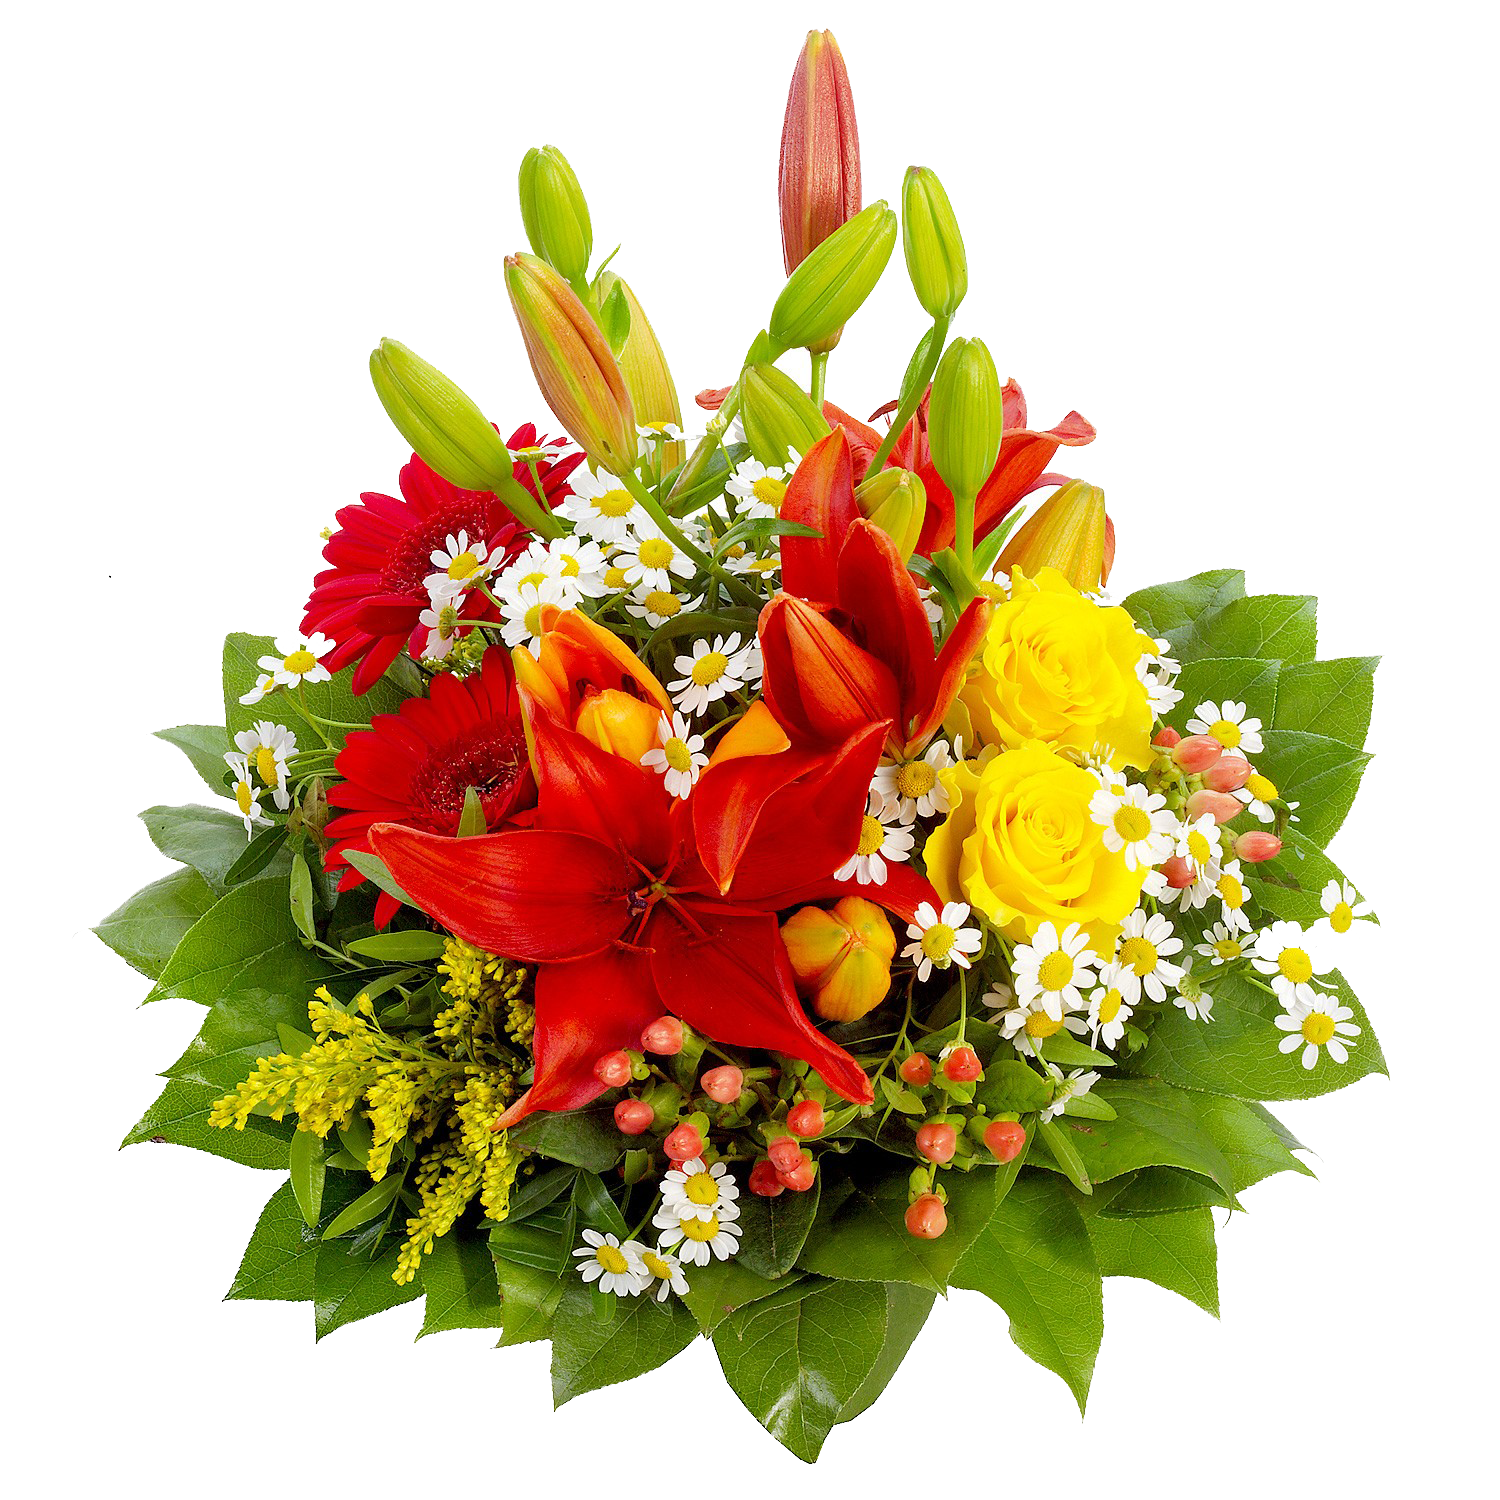 Birthday Flowers Bouquet PNG Image - Birthday Flowers PNG HD